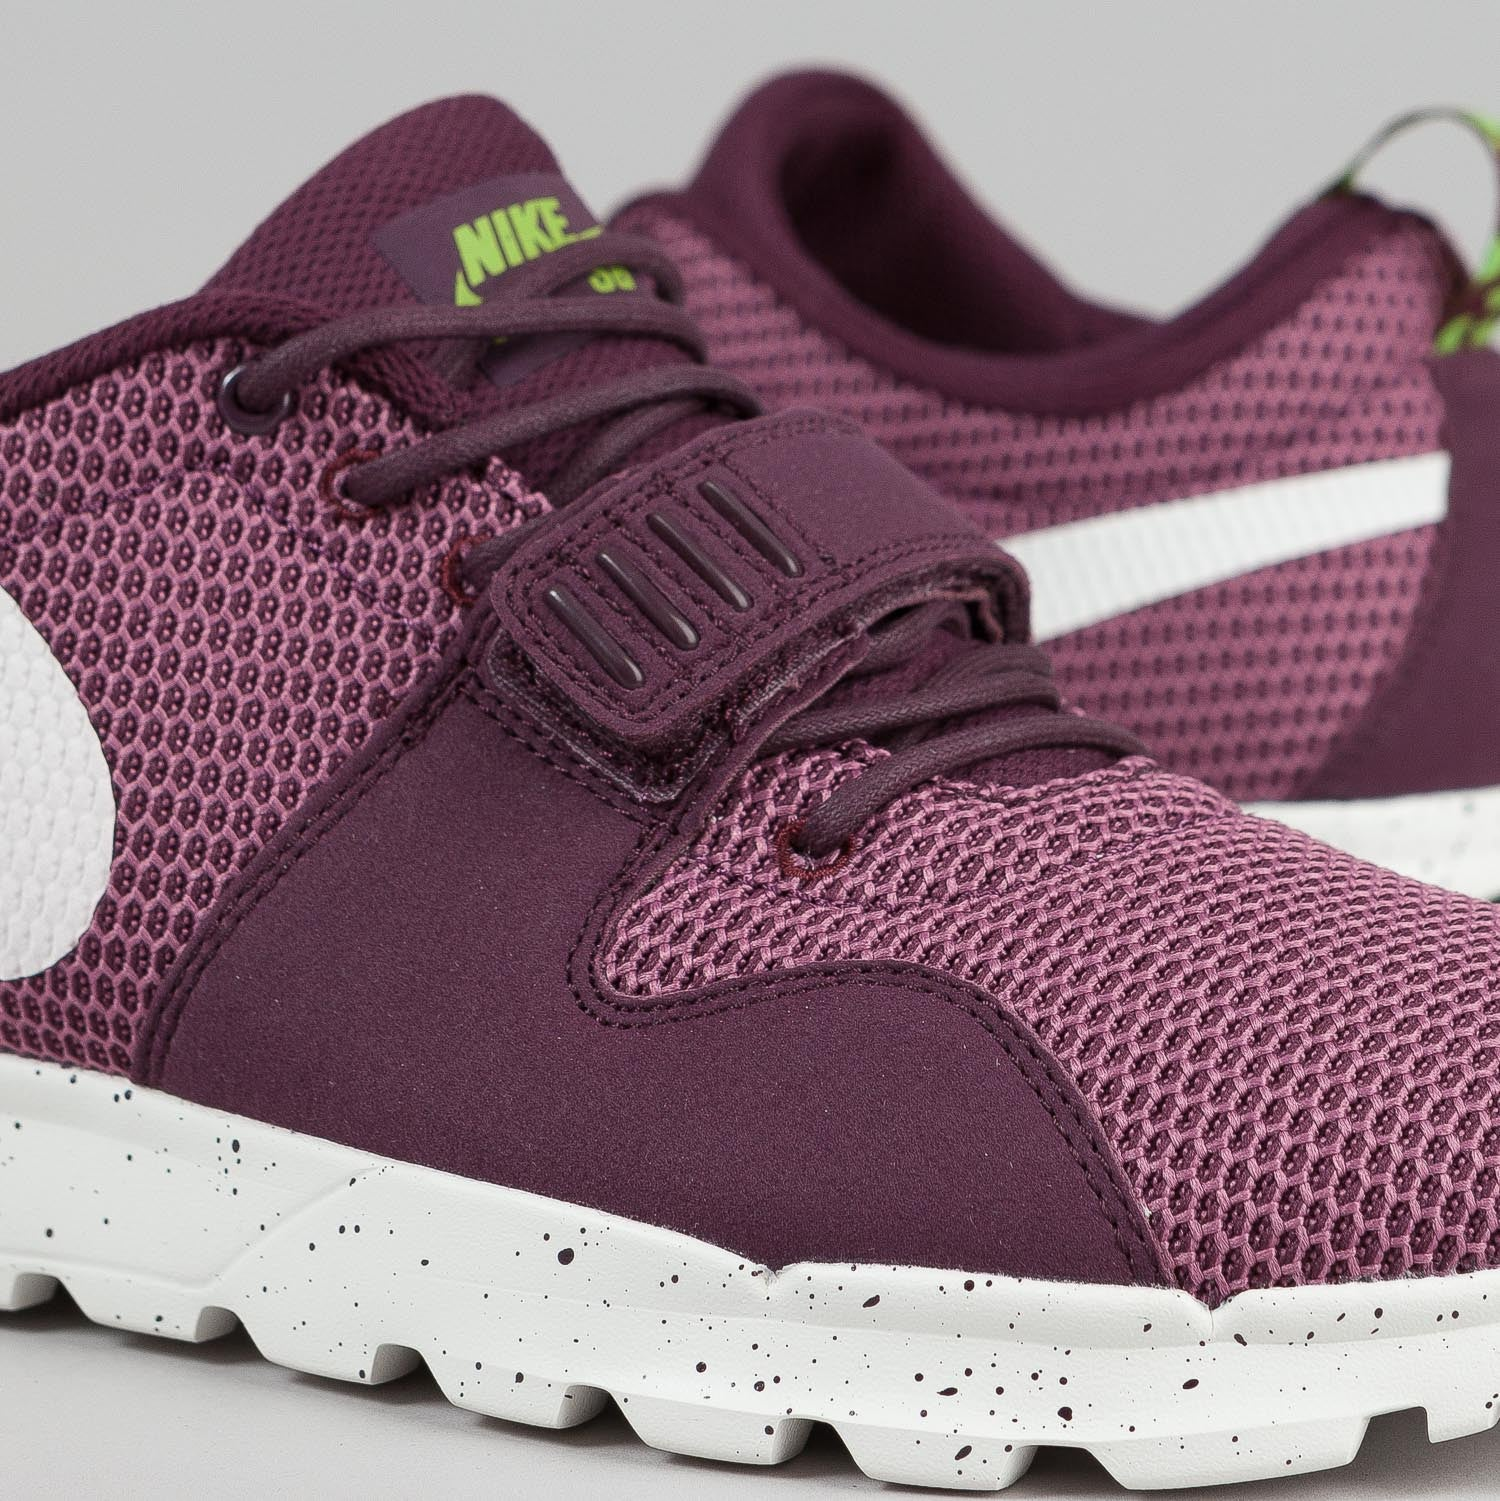 Nike SB Trainerendor Shoes Merlot / Sail - Flash Lime